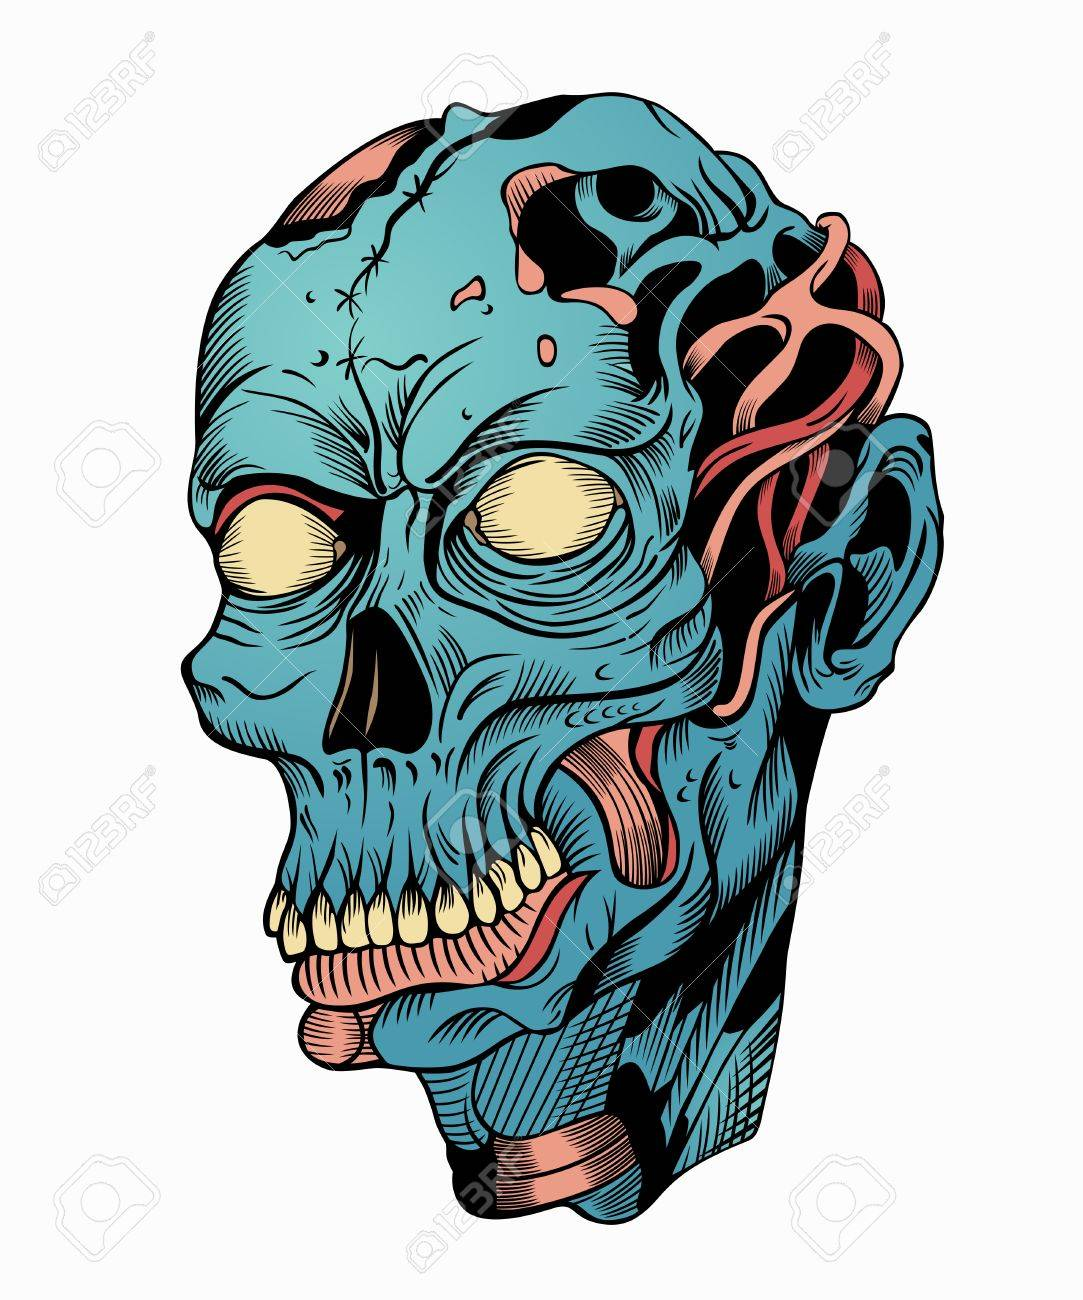 1083x1300 Illustration Of Zombie Head With A Broken Skull. Royalty Free